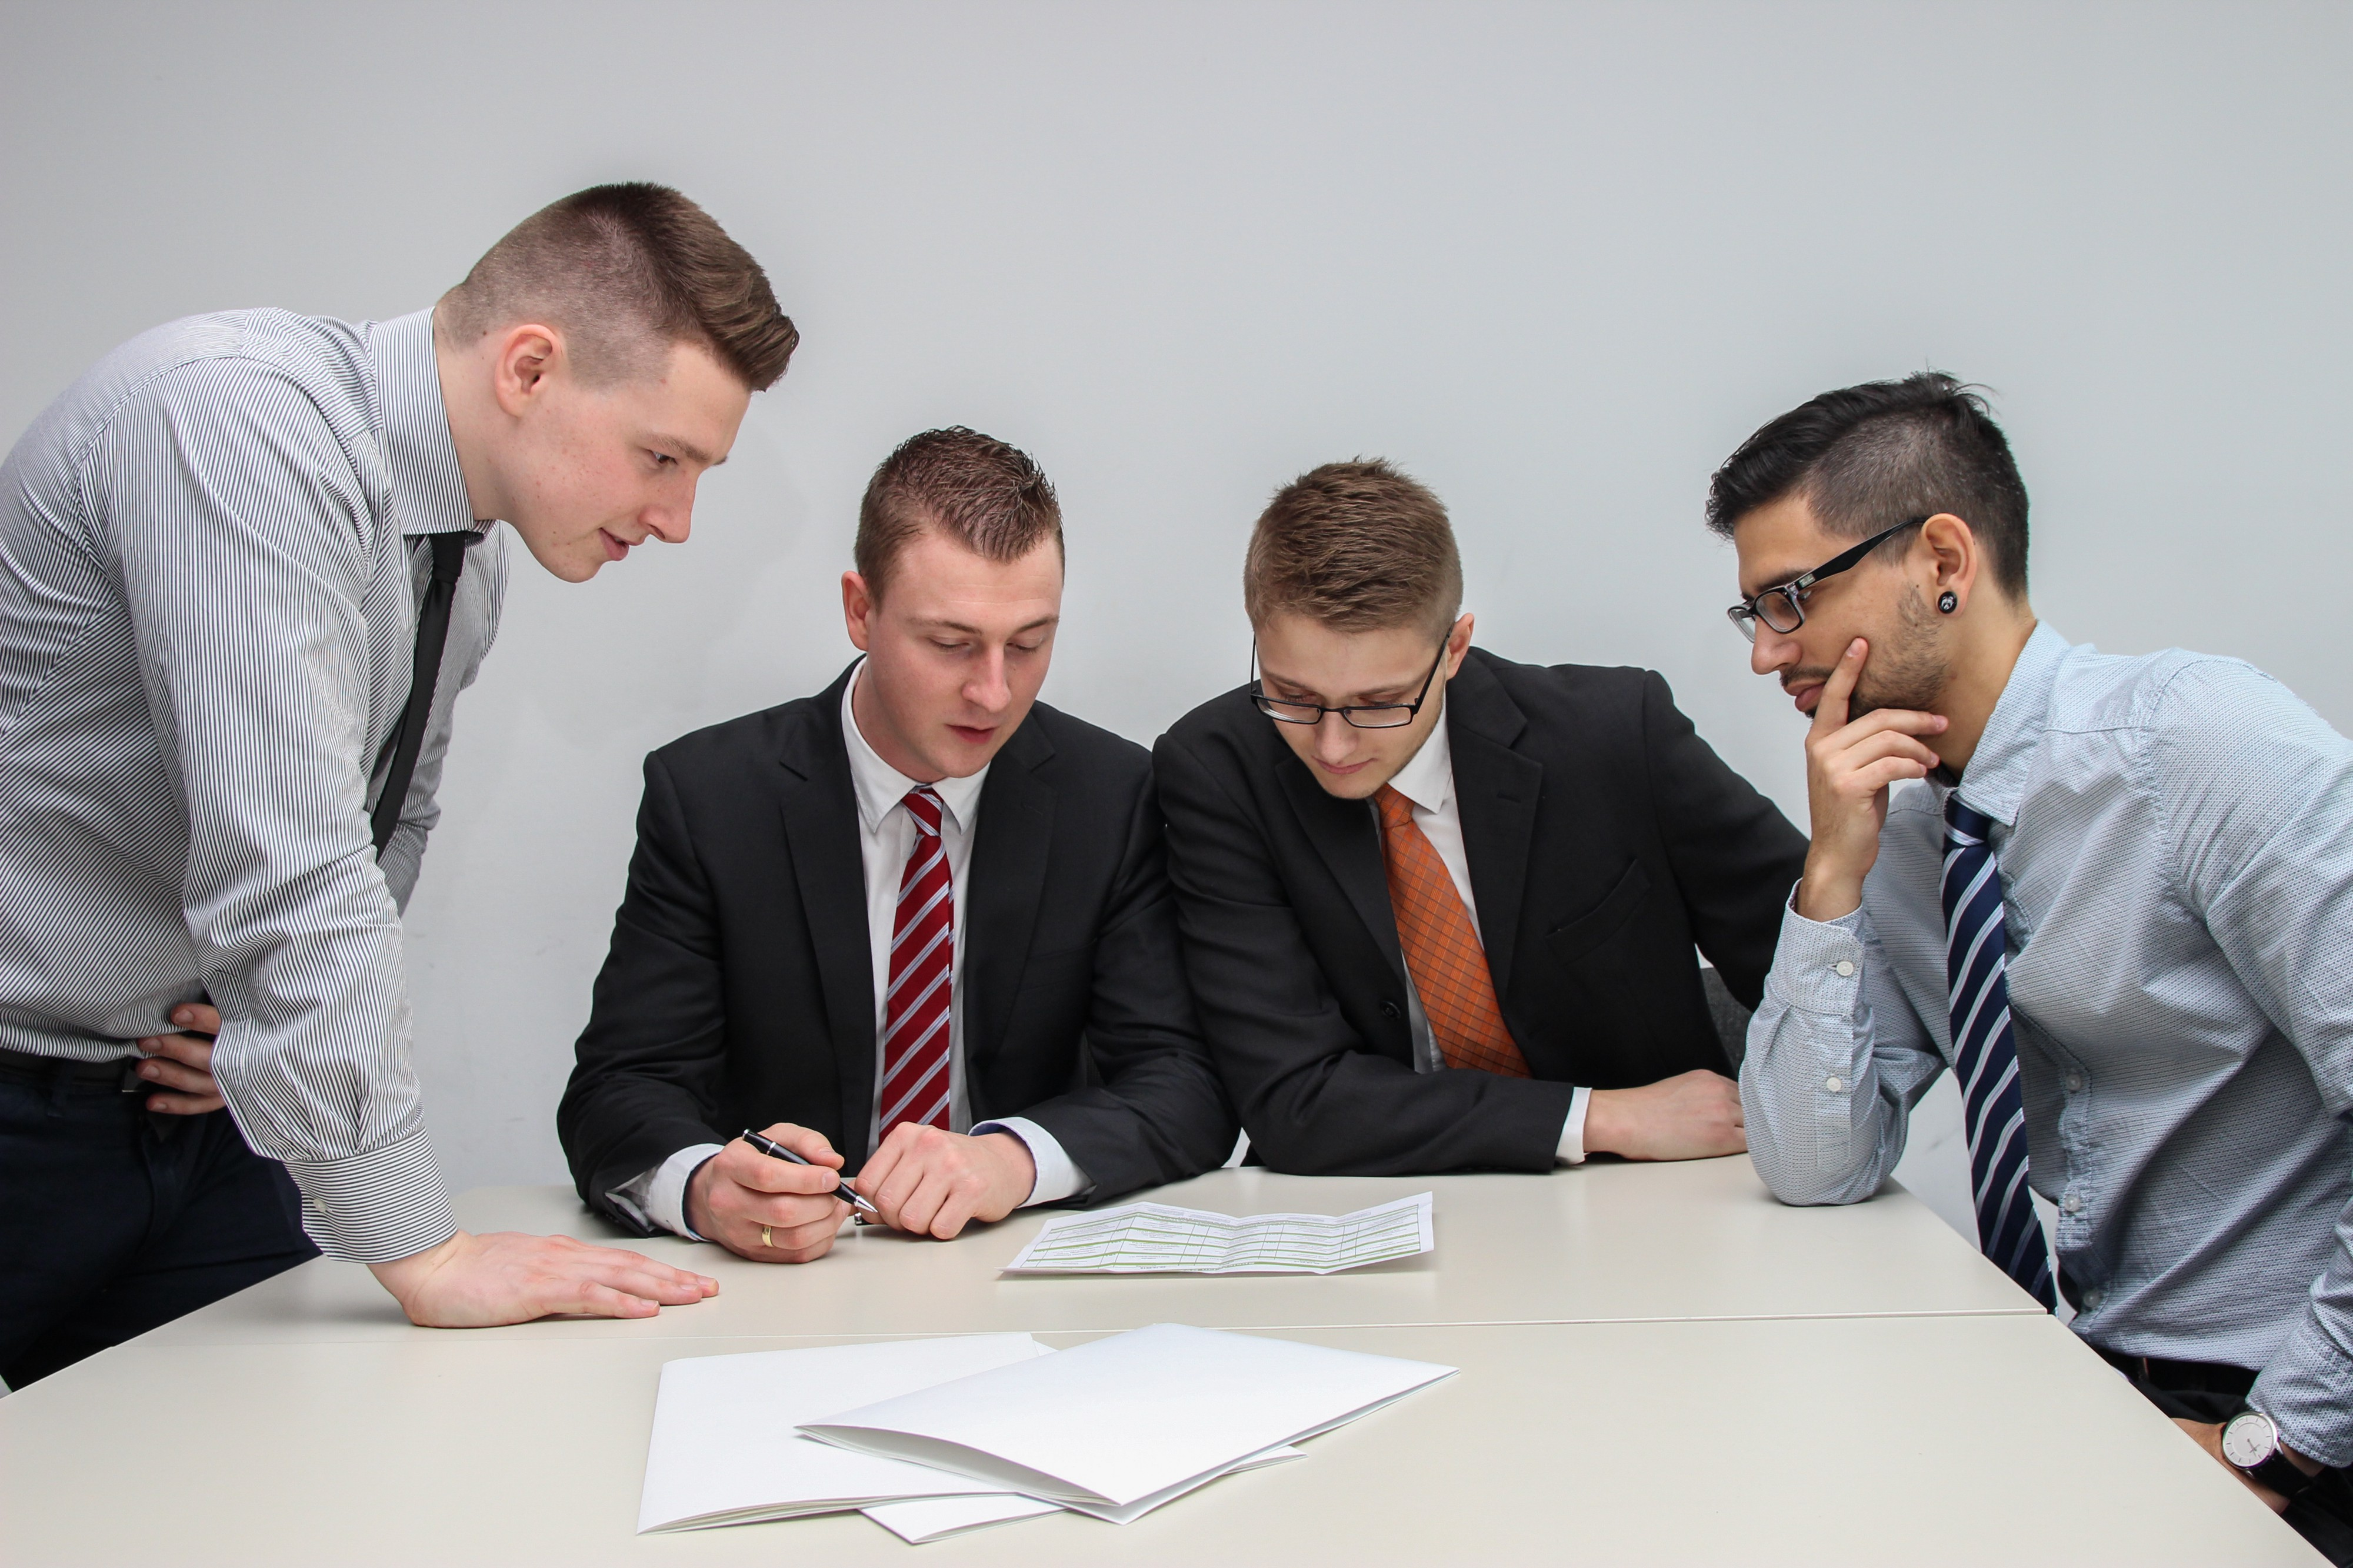 four men in suits and ties looking at documents on a desk